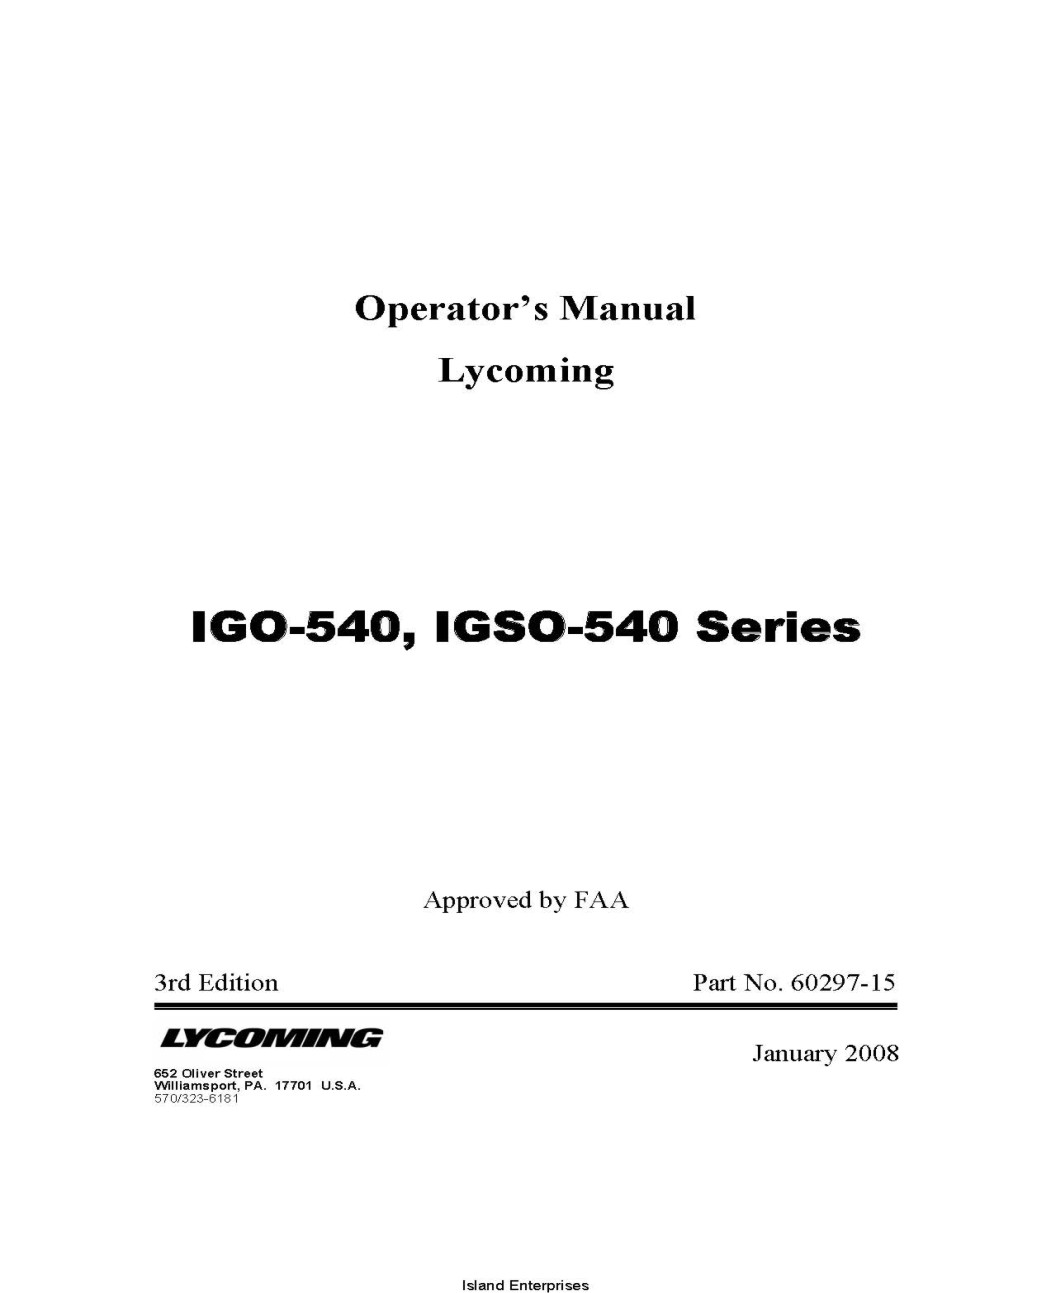 Lycoming IGO-540, IGSO-540 Series Operator's Manual 60297